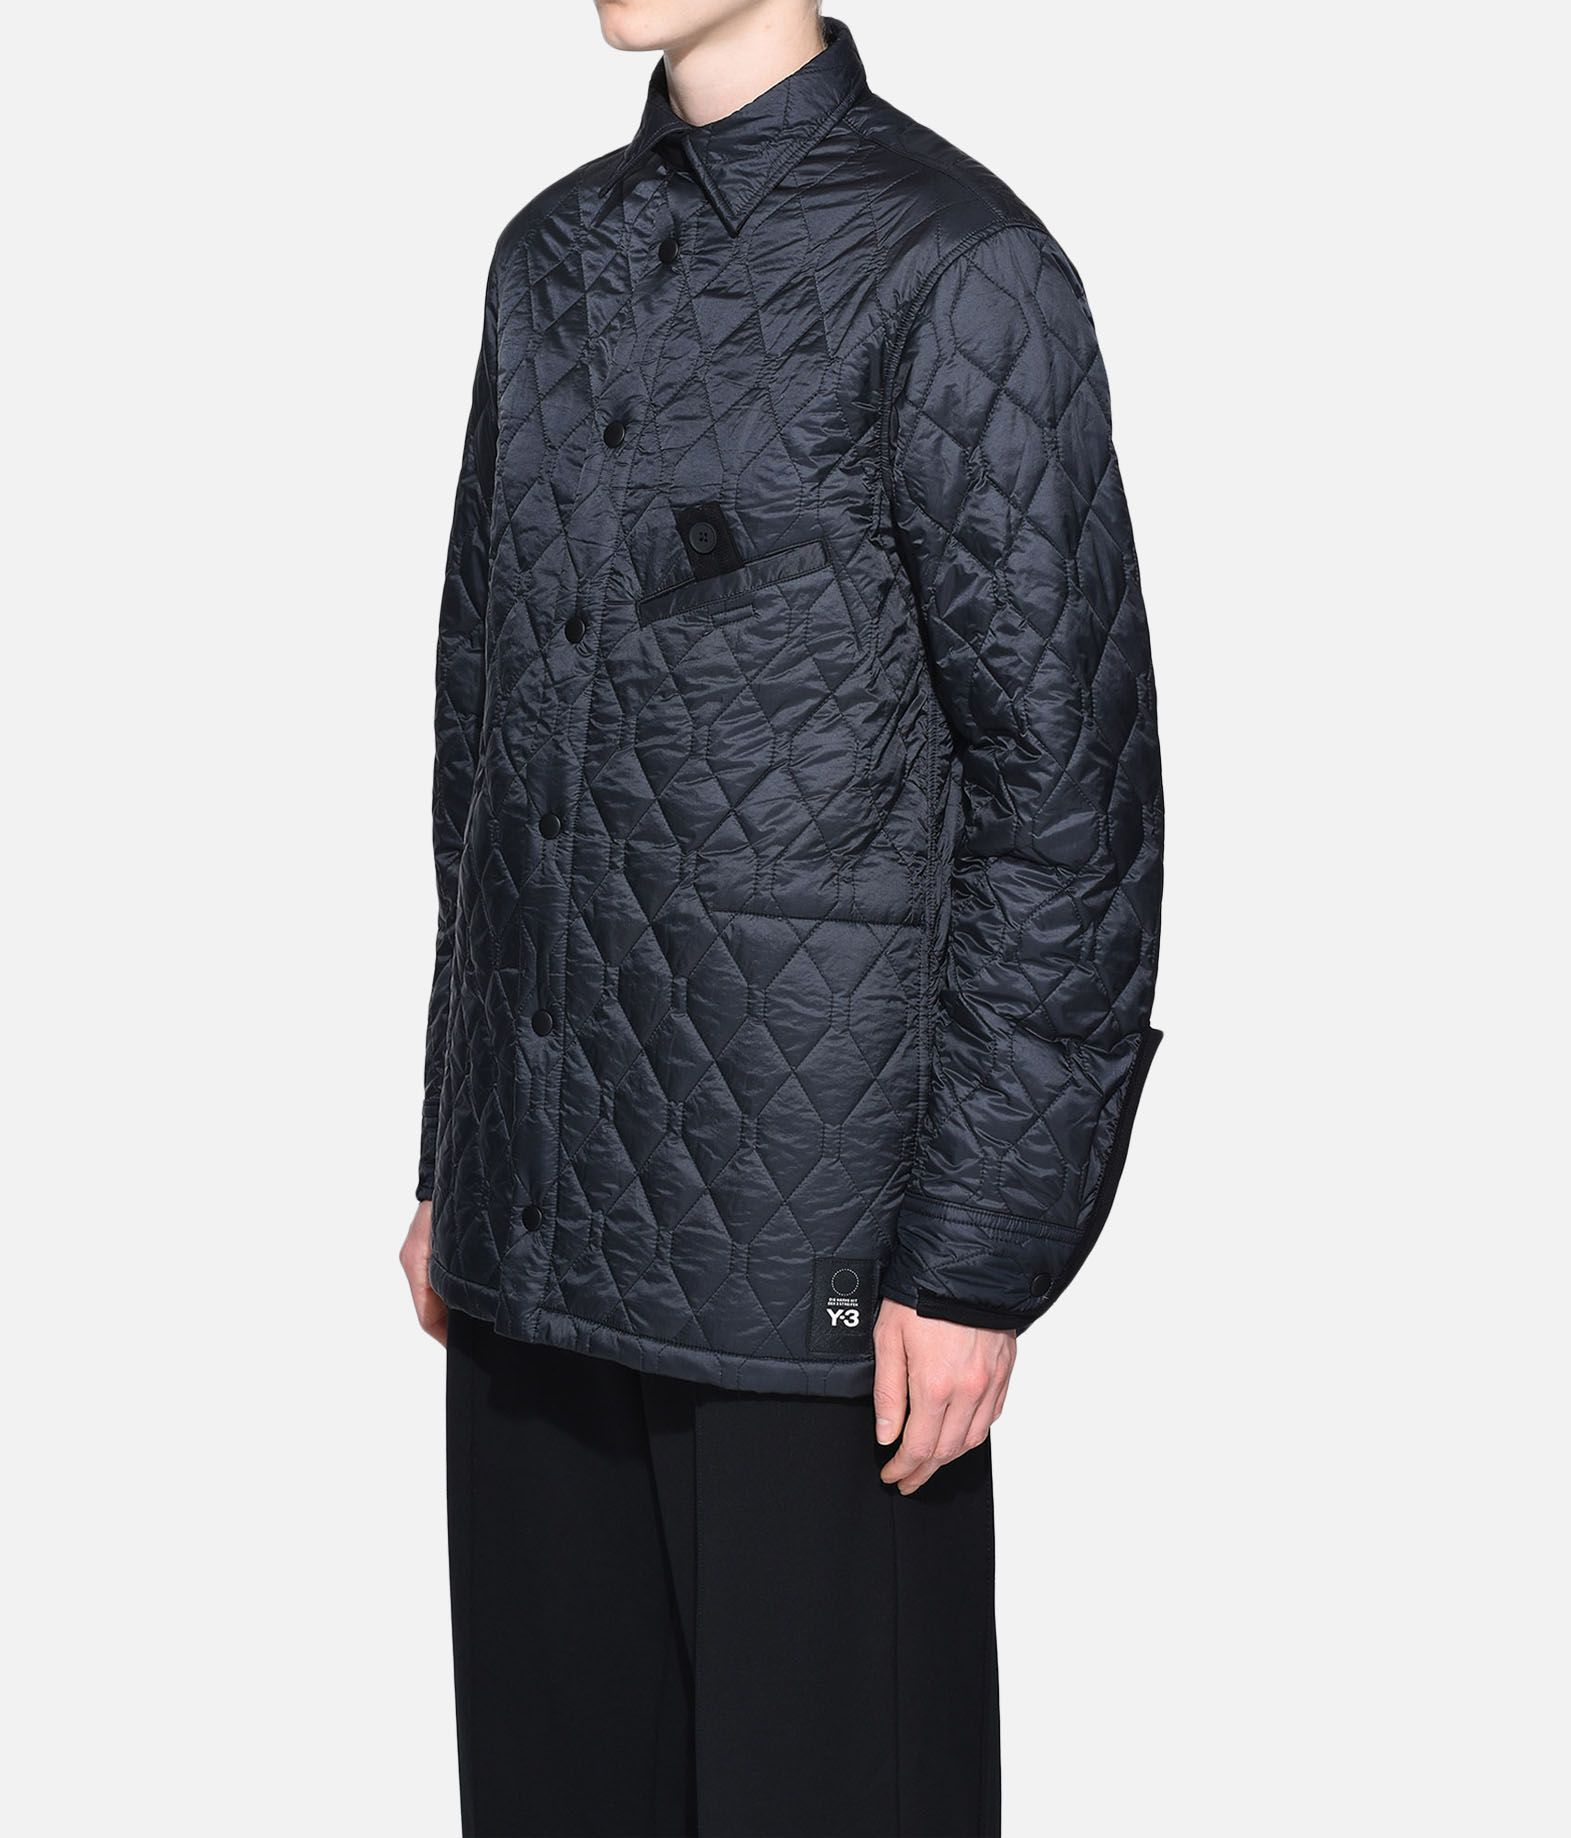 Y-3 Y-3 Quilted Shirt Long sleeve shirt Woman e